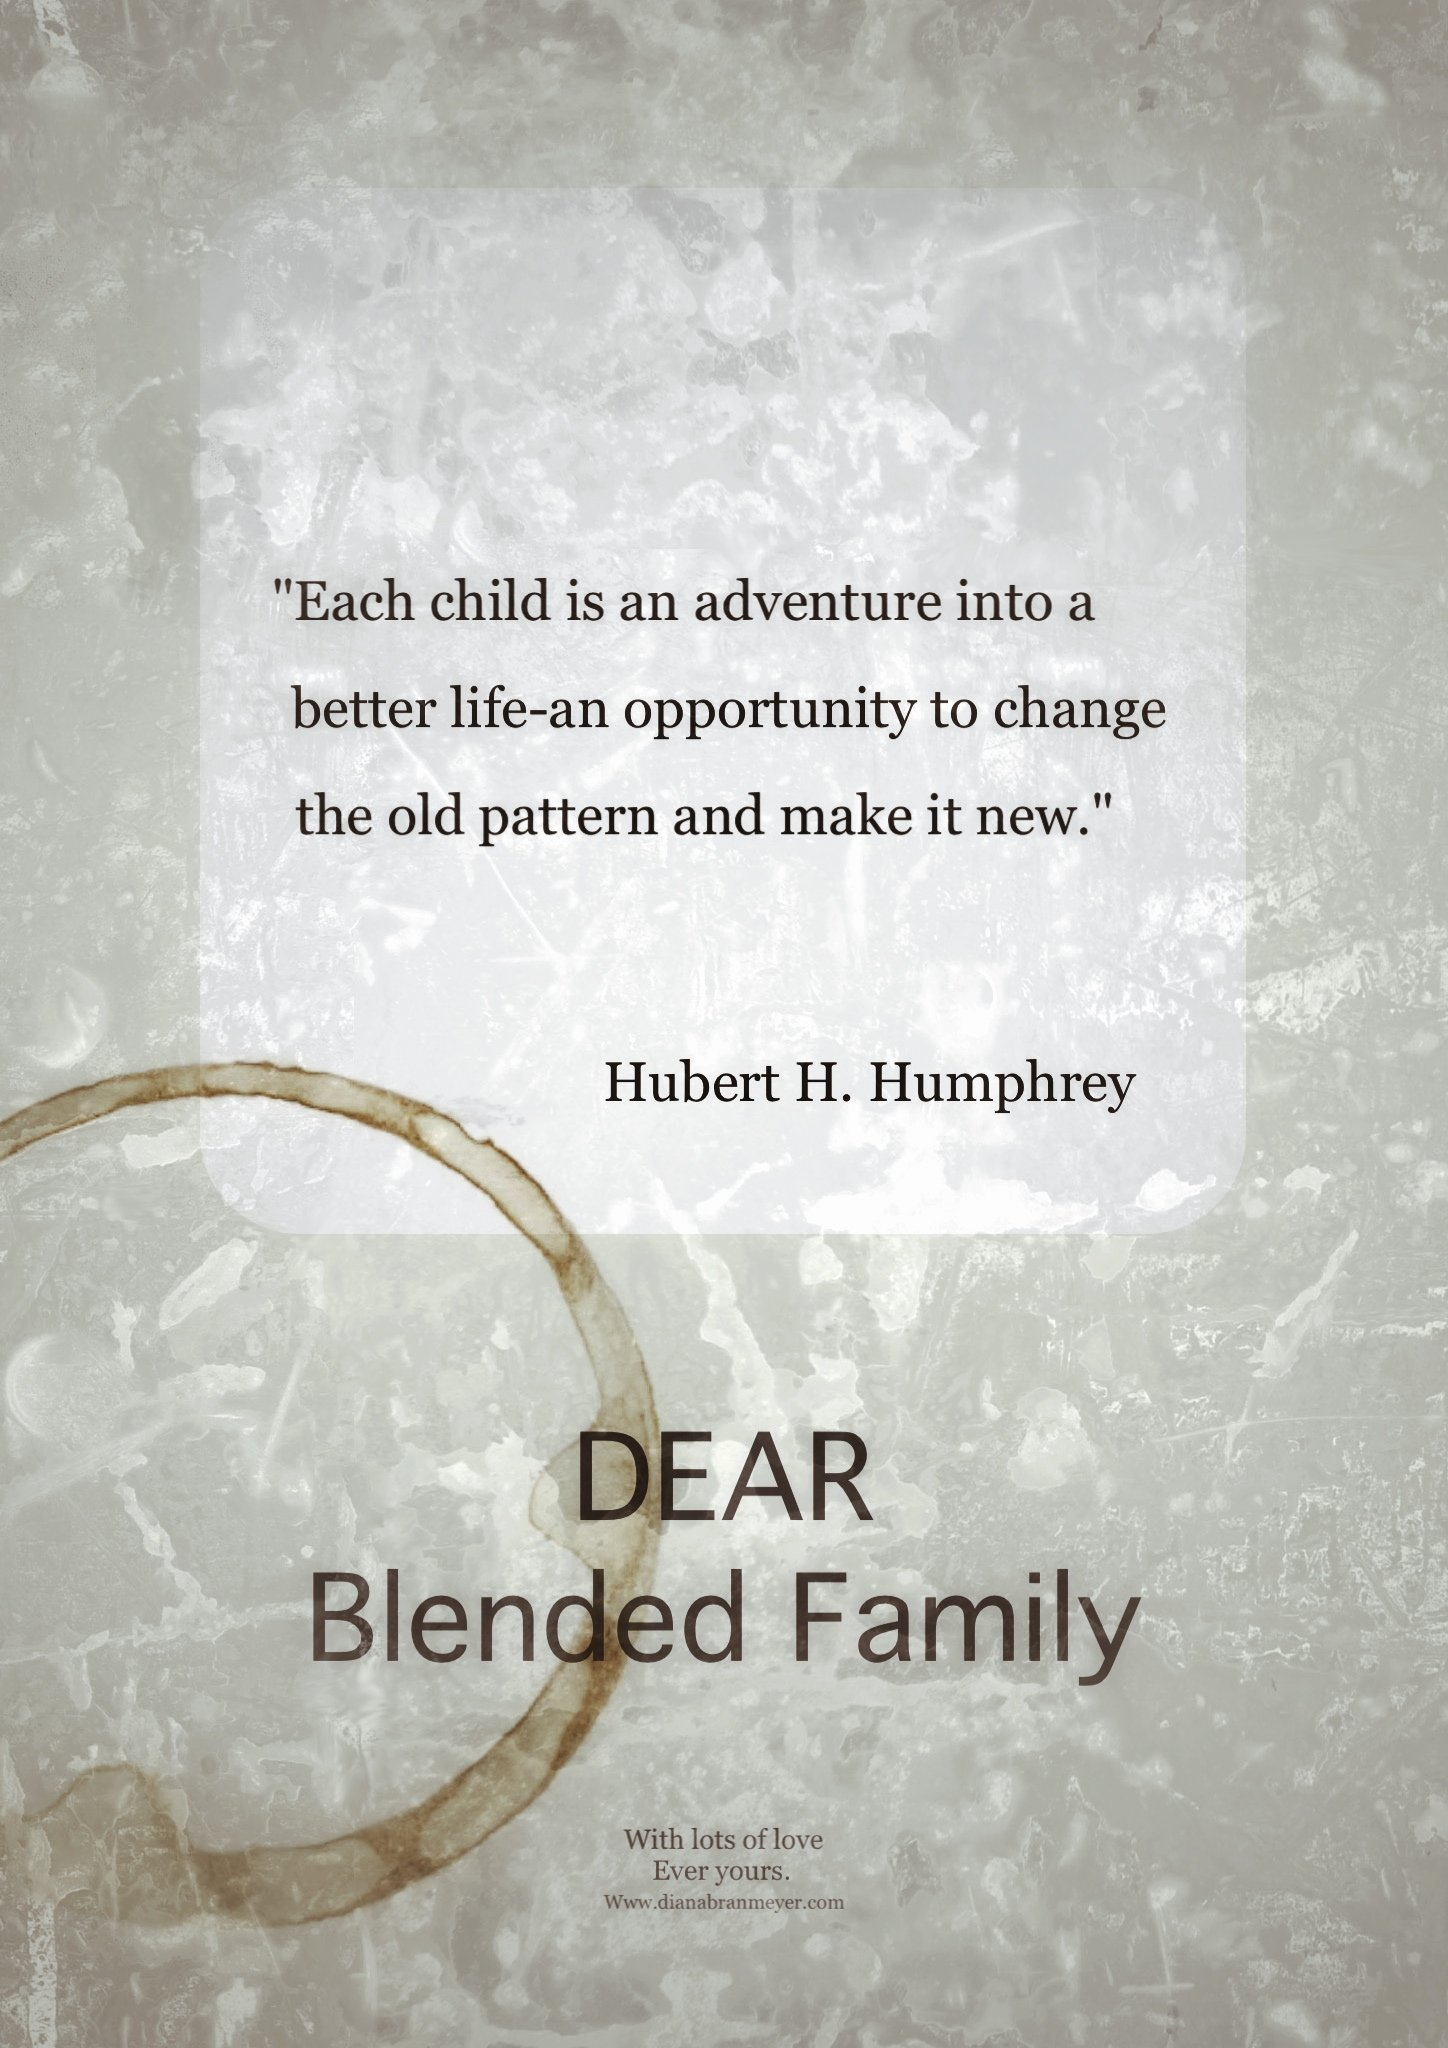 Inspirational Quotes For Blended Families. QuotesGram